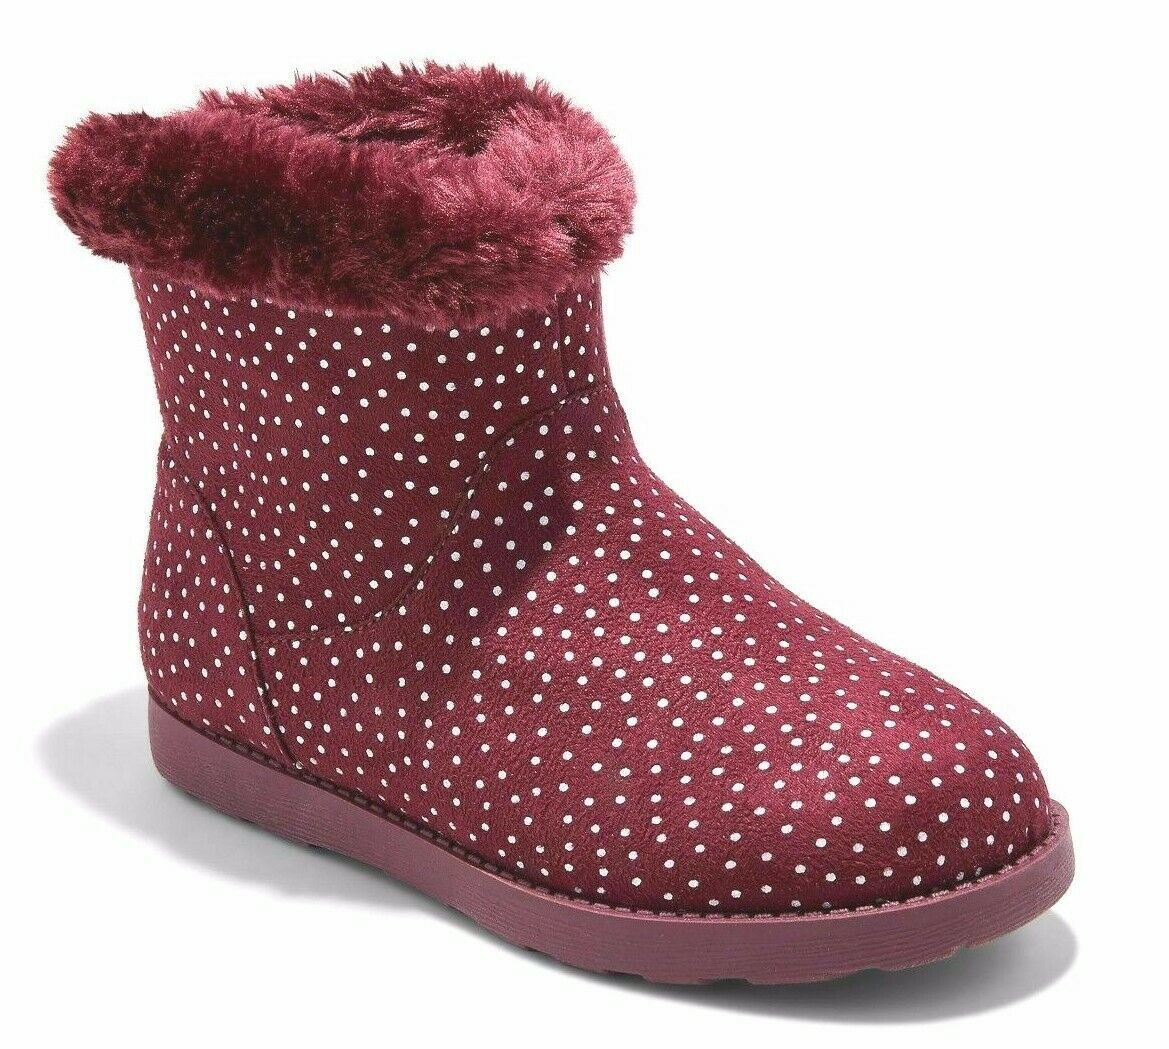 Cat & Jack Girls' Burgundy Red Silver Dots Darby Faux Fur Winter Boots